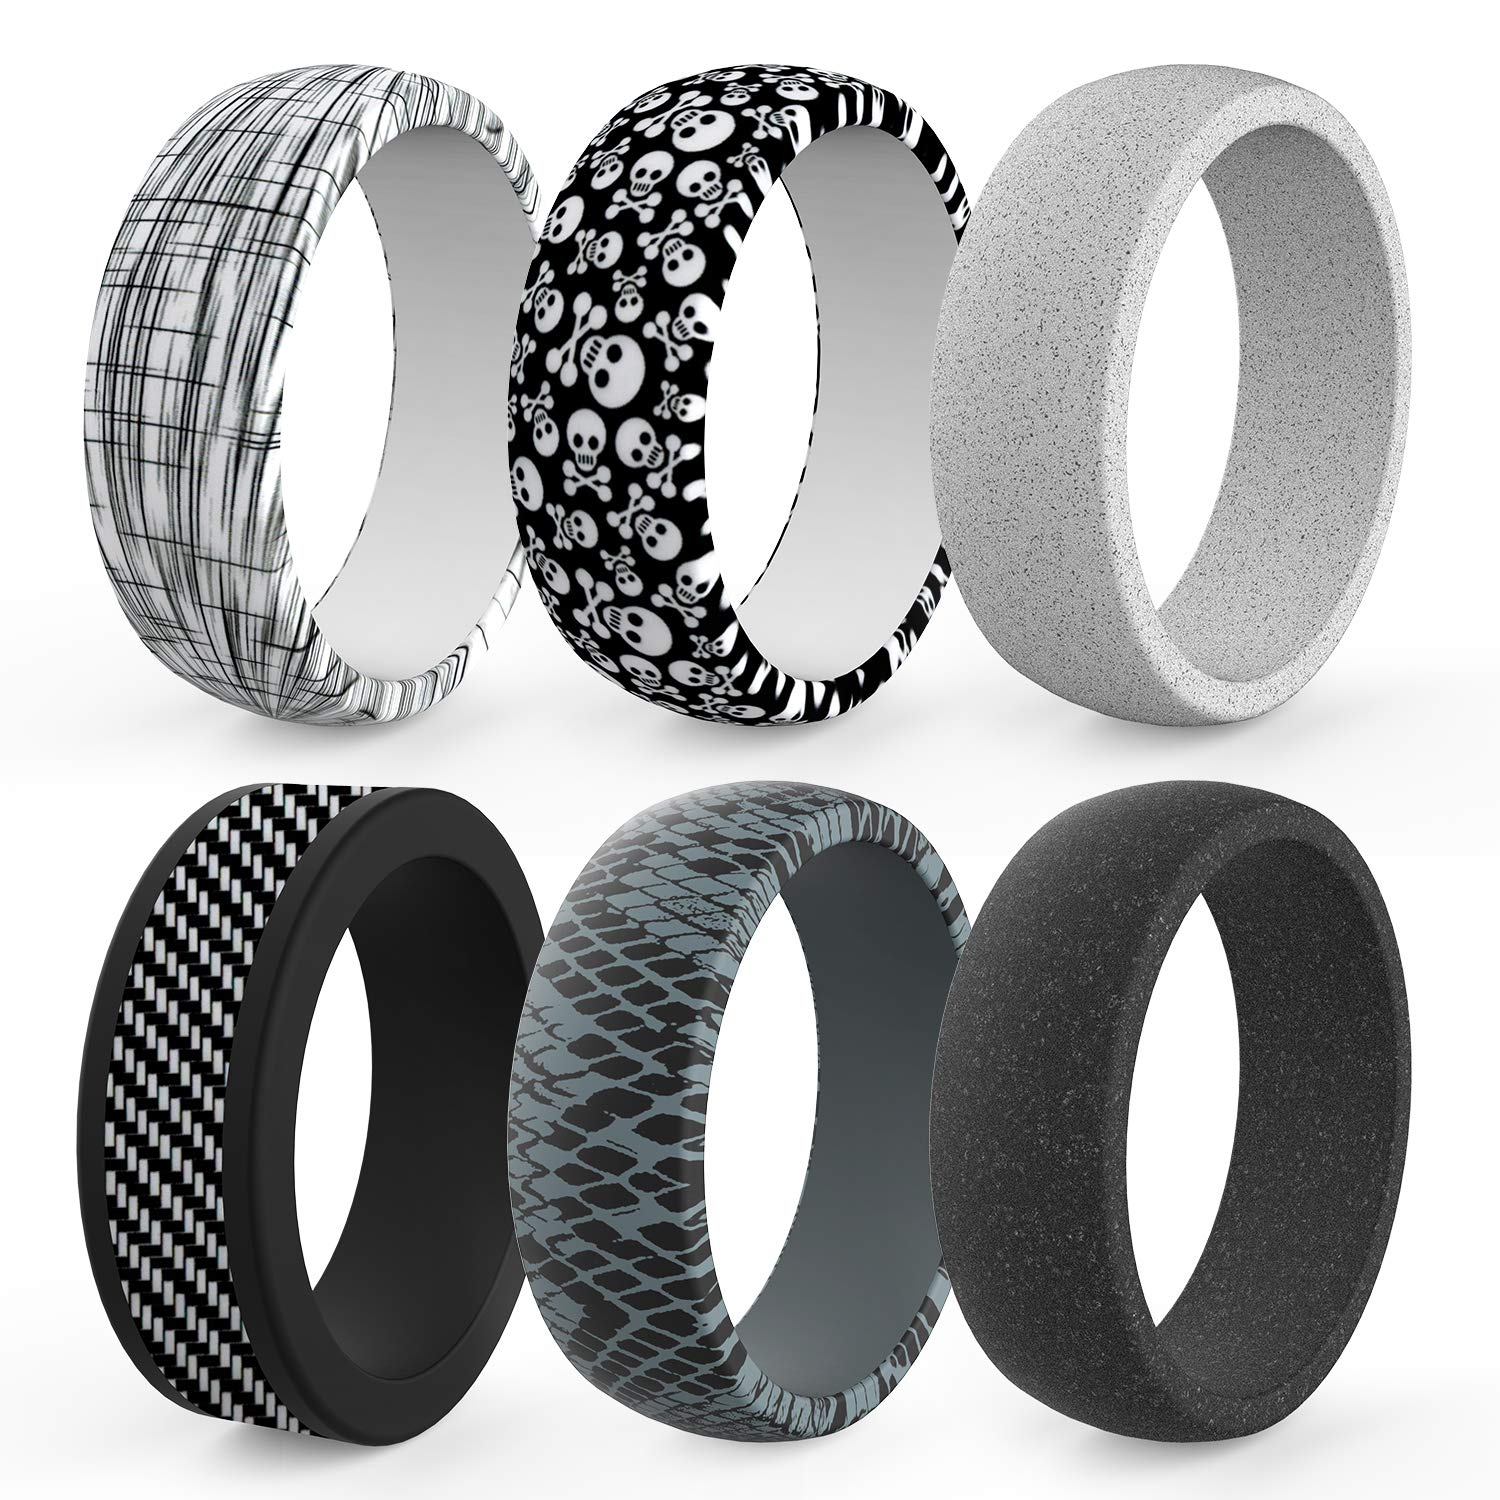 6 Packs Mens Rubber Wedding Bands Durable Skin Safe Antibacterial Rubber Rings/ for Crossfit Workout Zollen Silicone Wedding Ring for Men